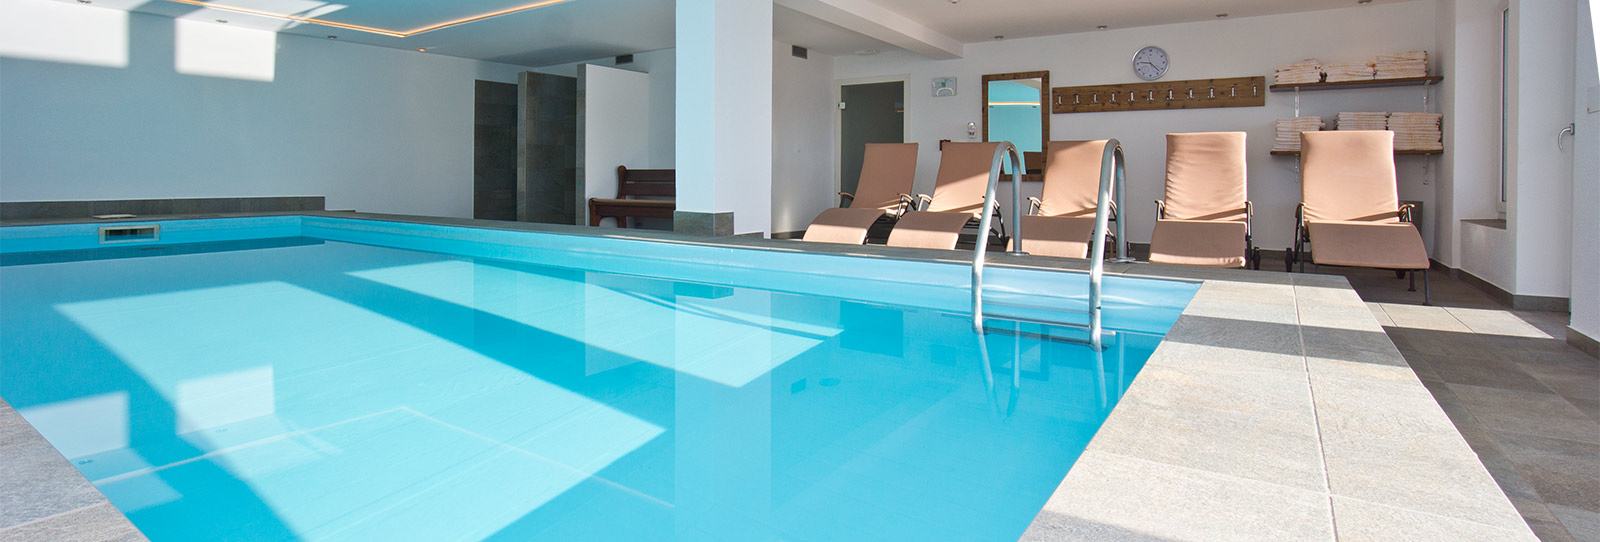 Swimming pool - Hotel Oberlechner